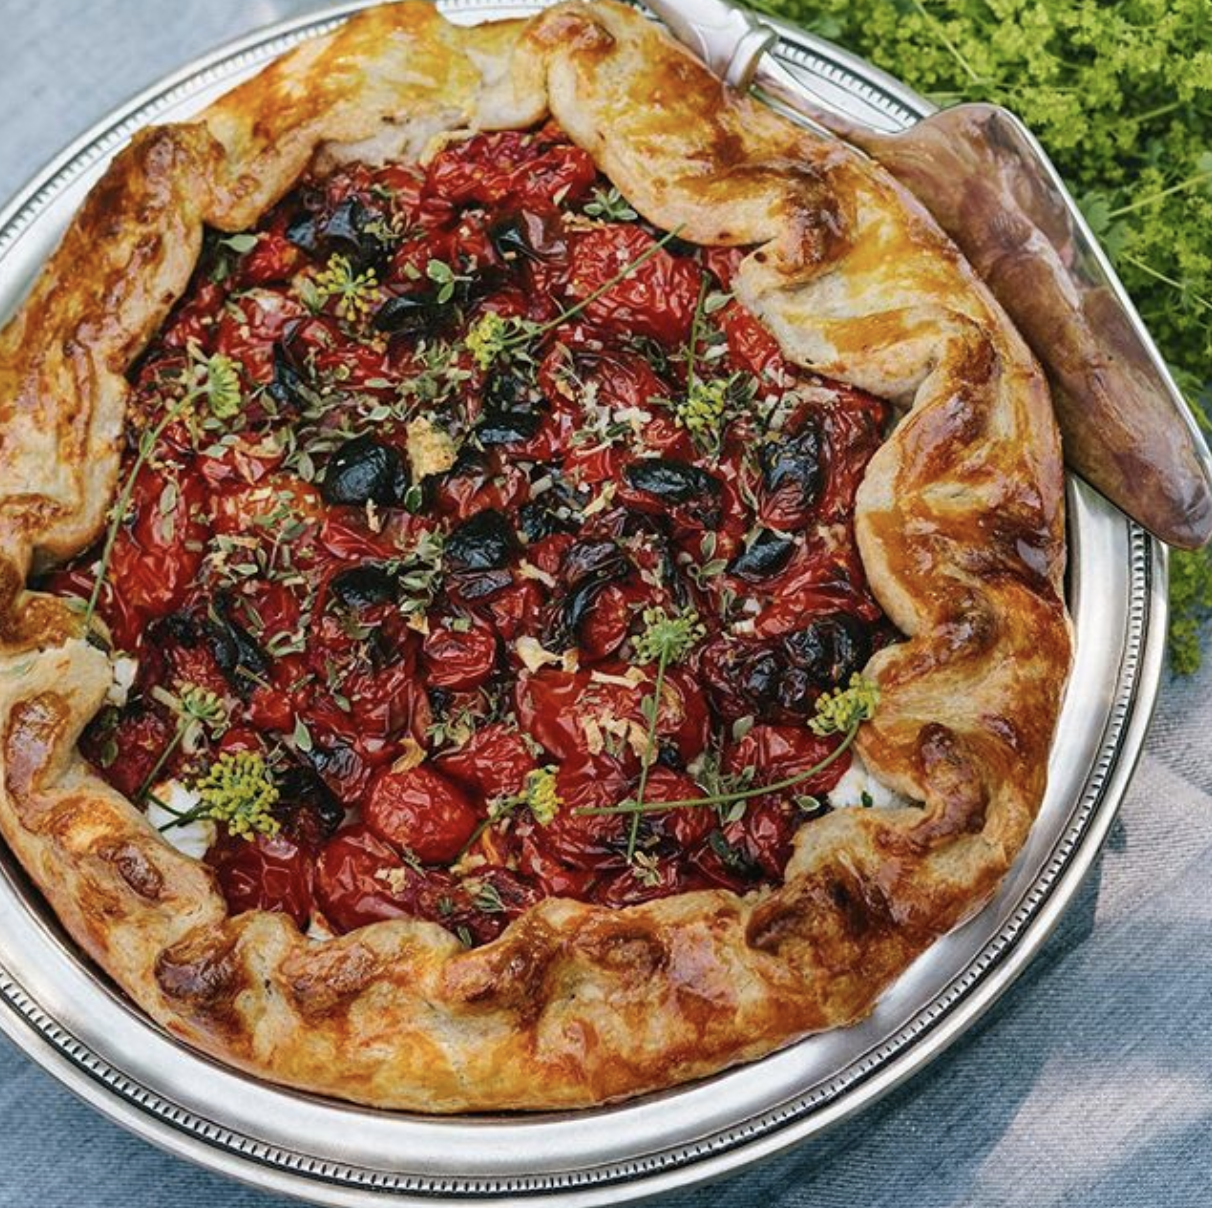 Weston Table Tomato Galette with Goat Cheese & Garden Herbs